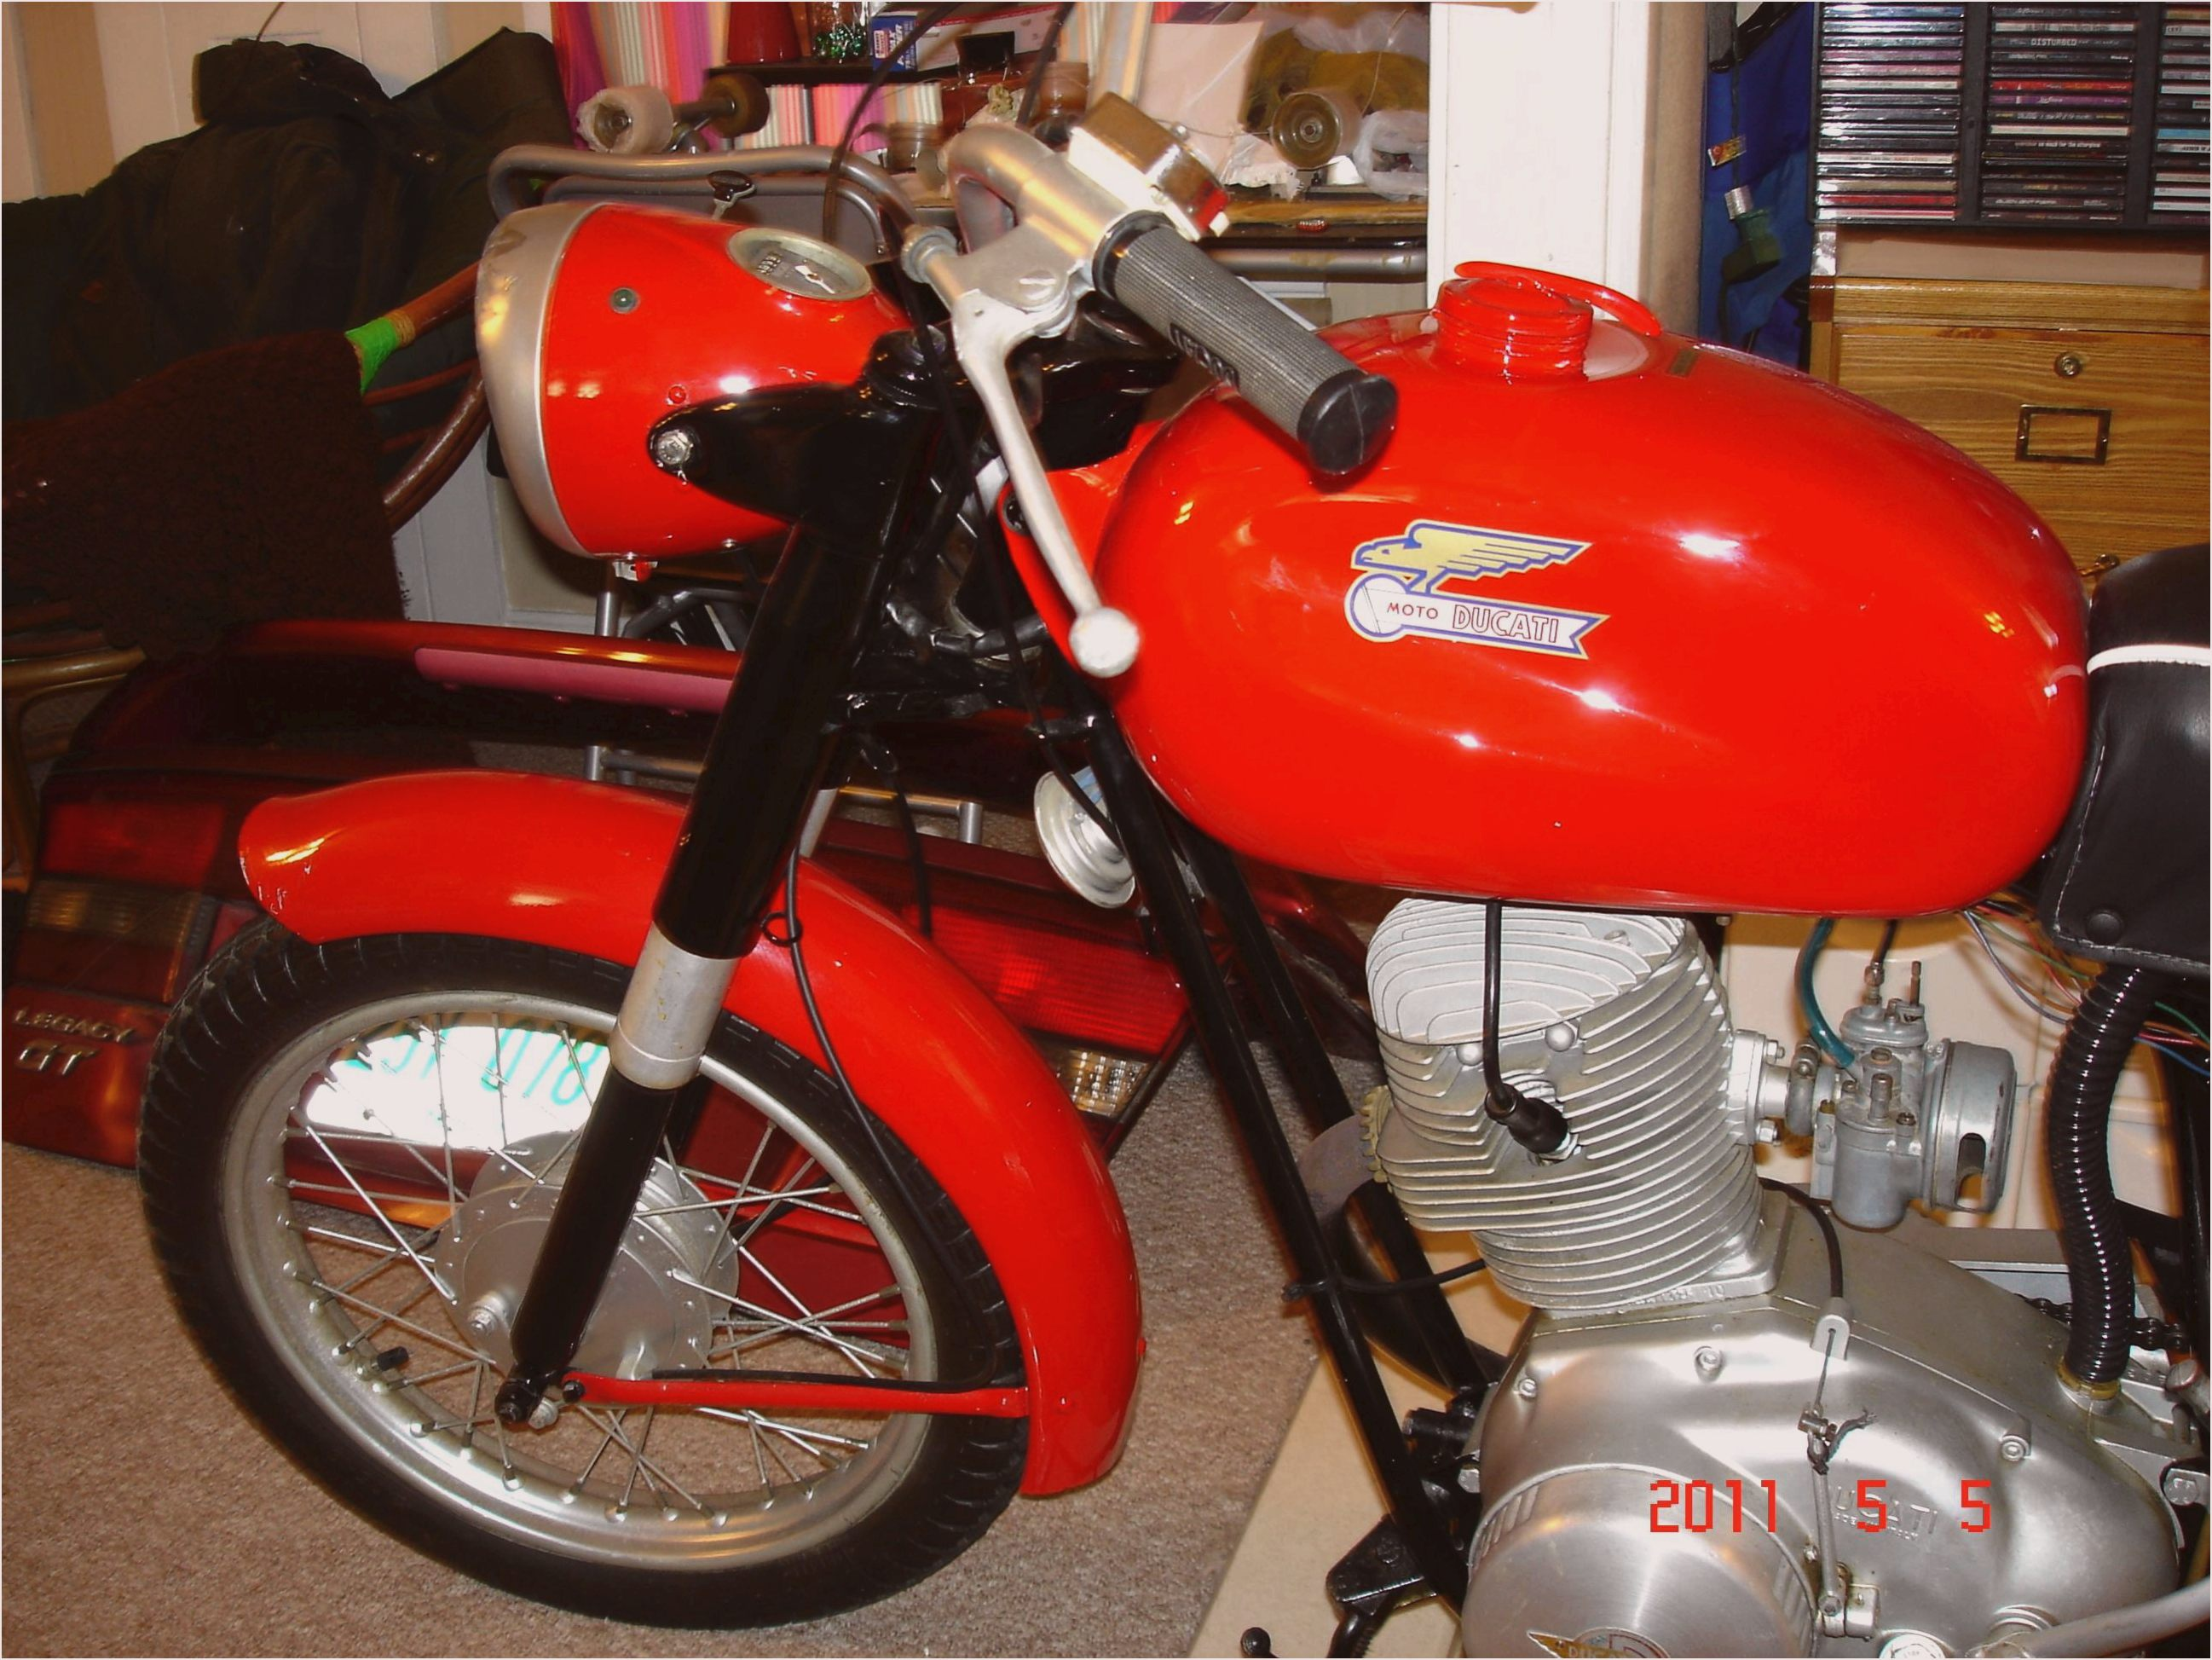 Cagiva SX 350 1979 images #66617